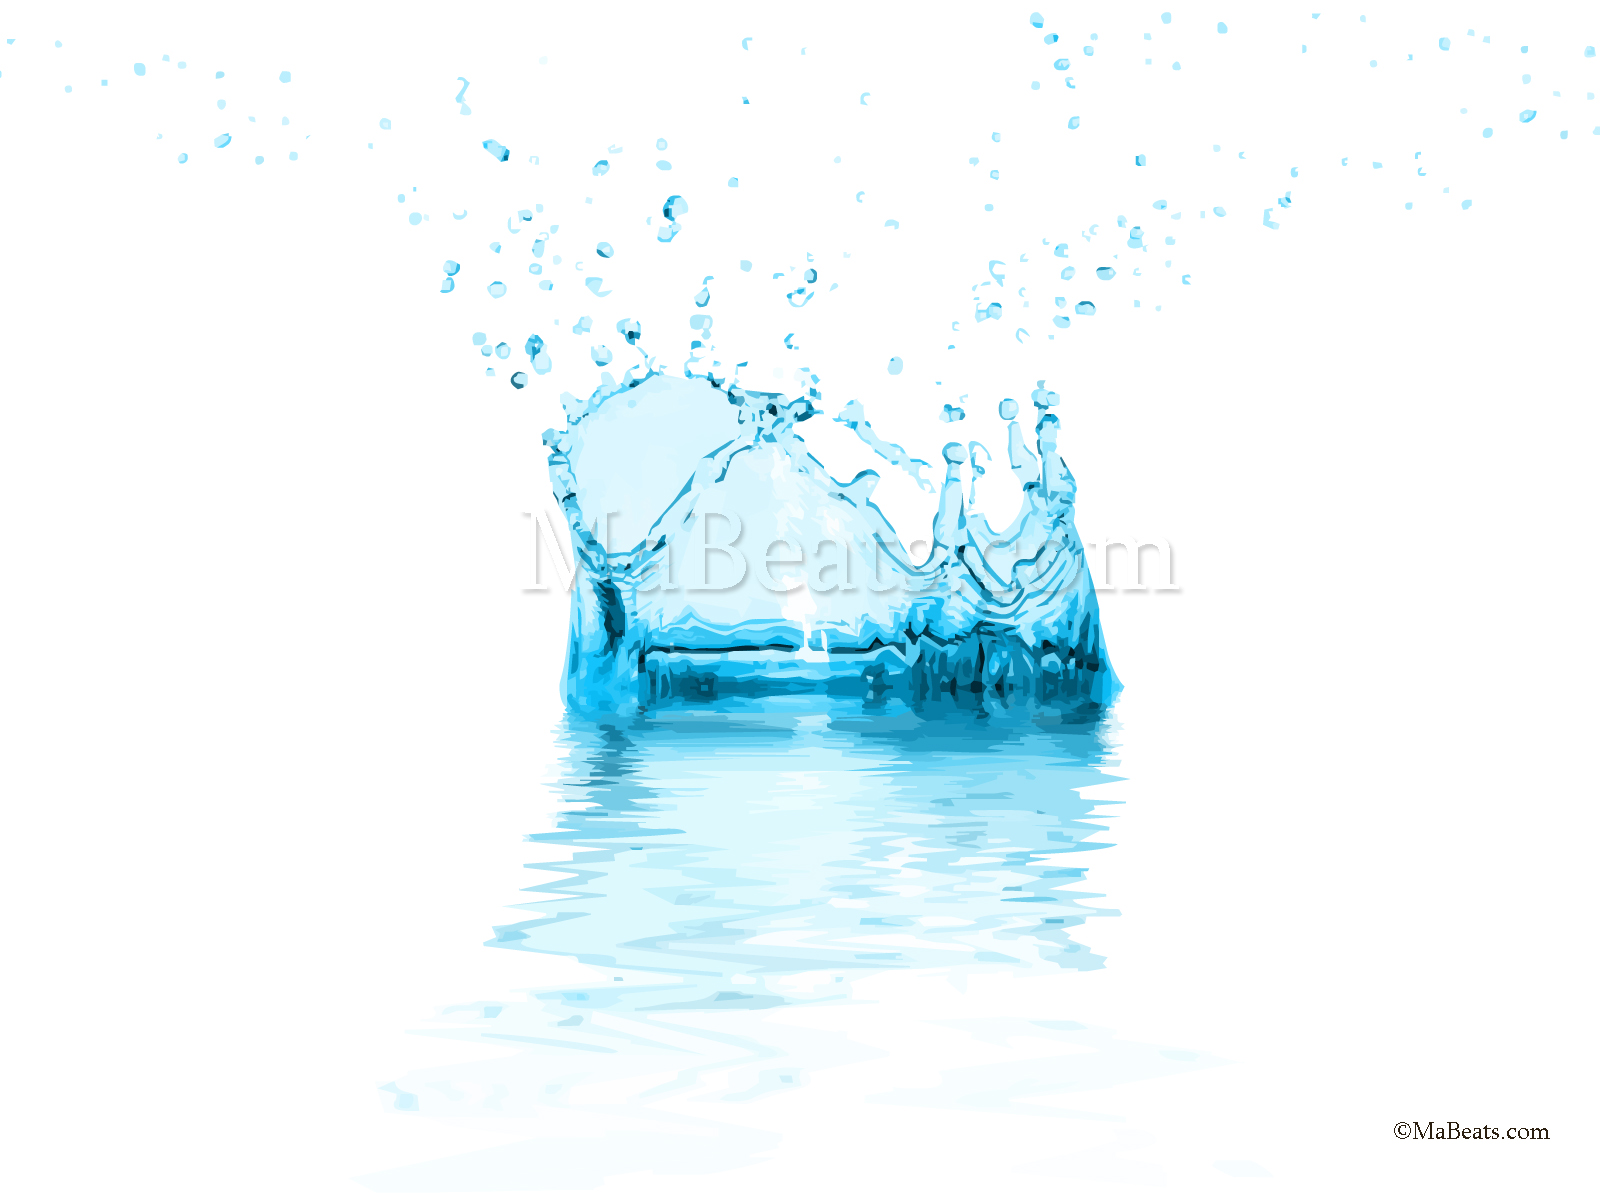 Mineral water - Is it safe?